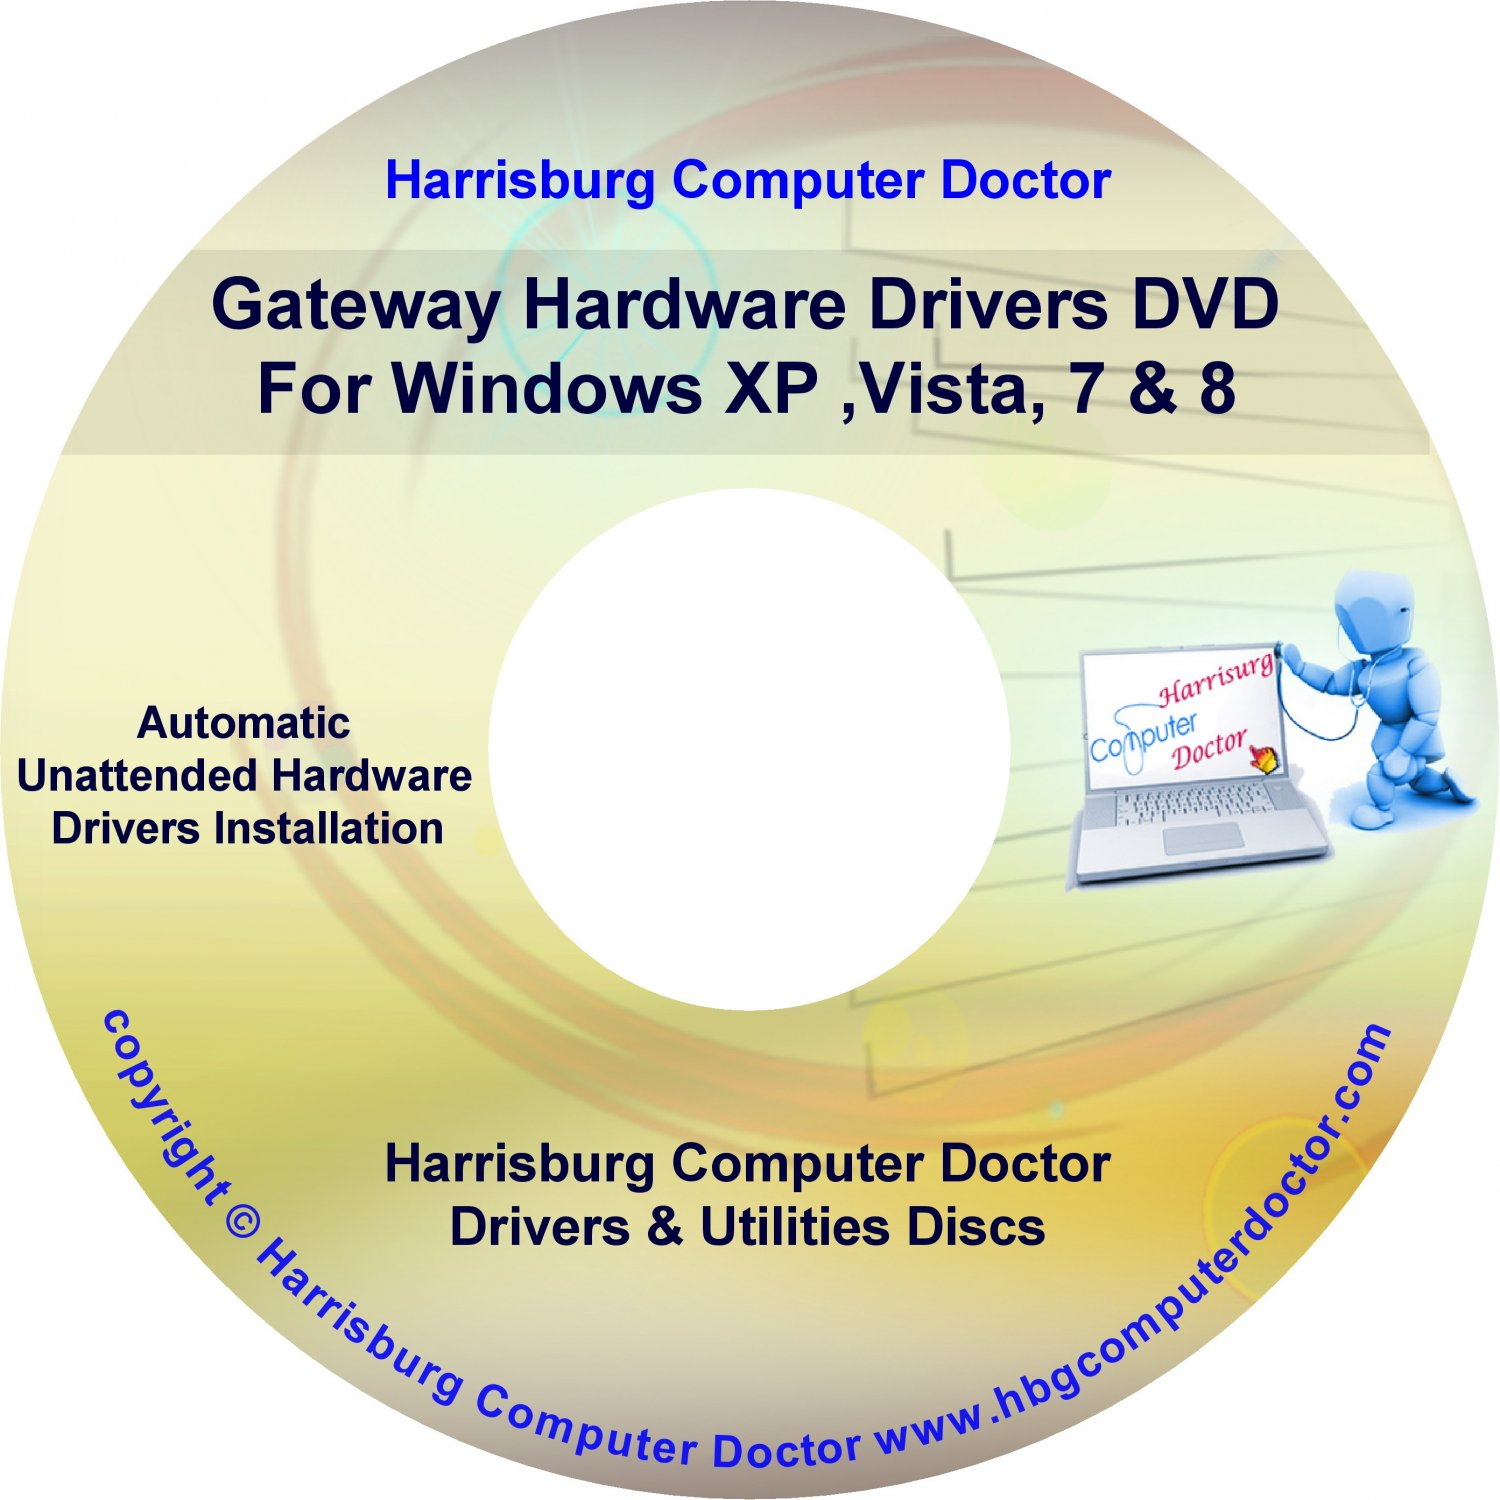 Gateway MX6441 Drivers DVD For Windows, XP, Vista, 7 & 8